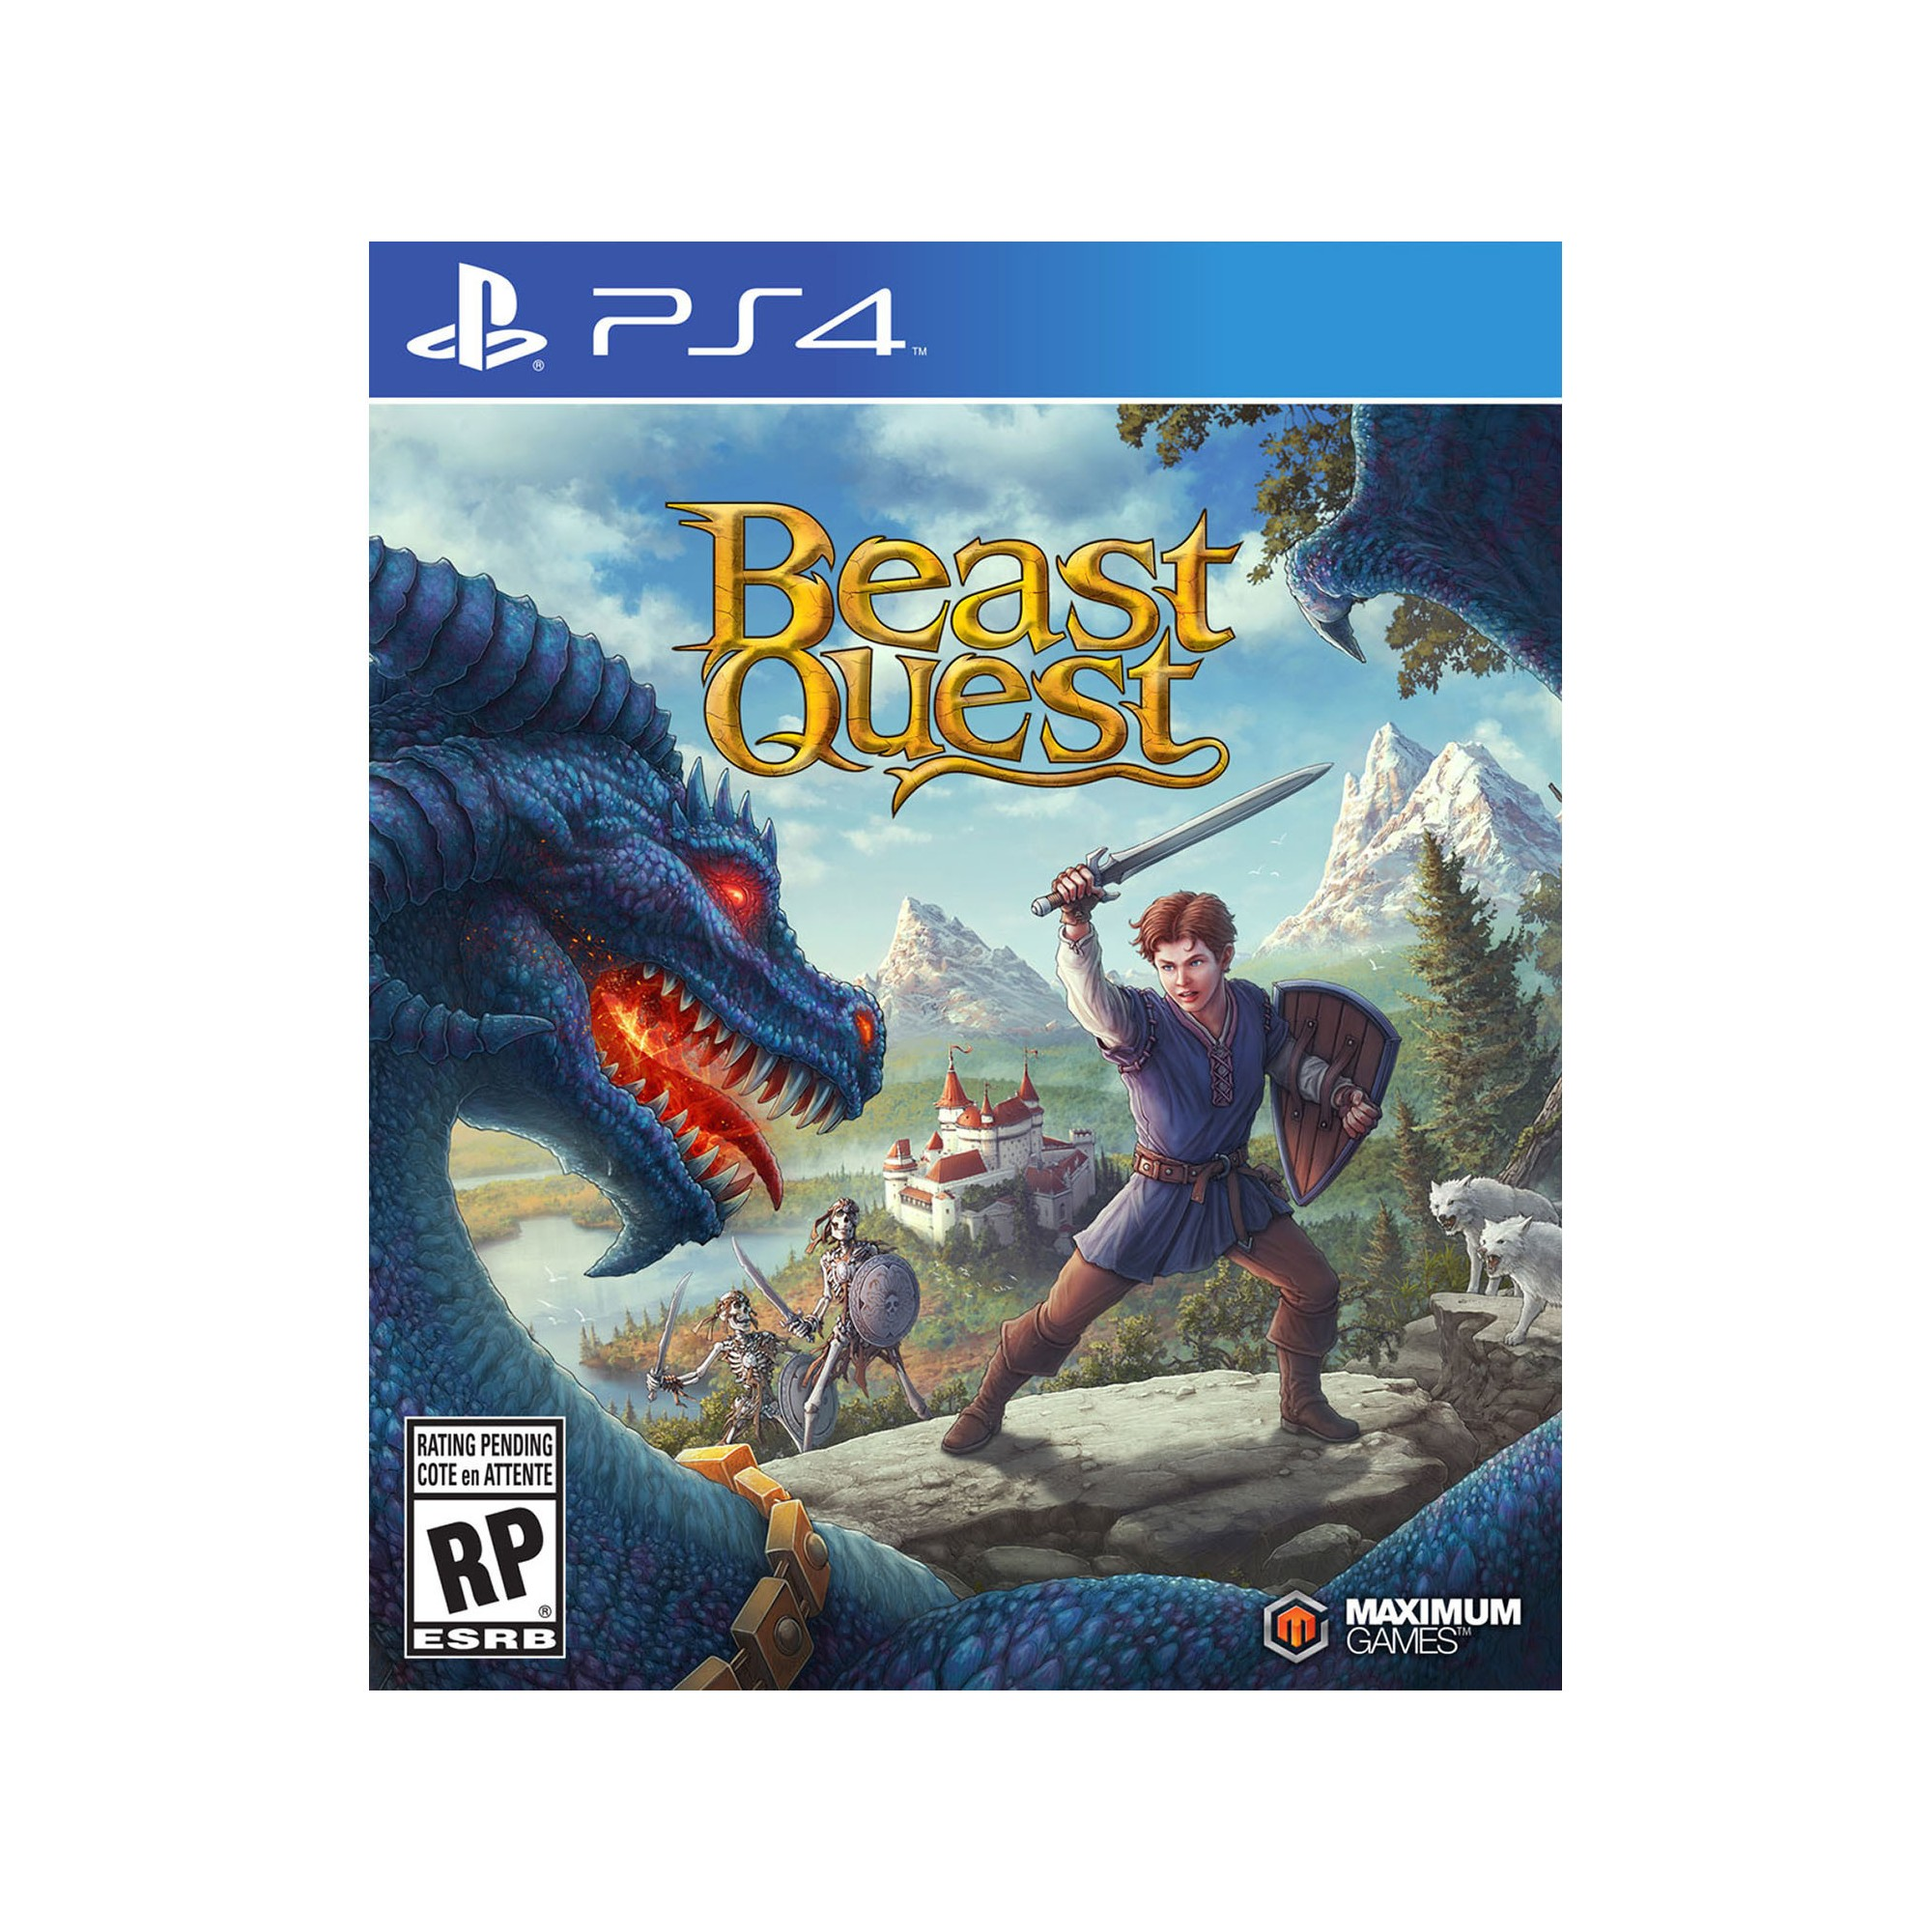 Beast Quest PlayStation 4 Xbox one games, Ps4 games